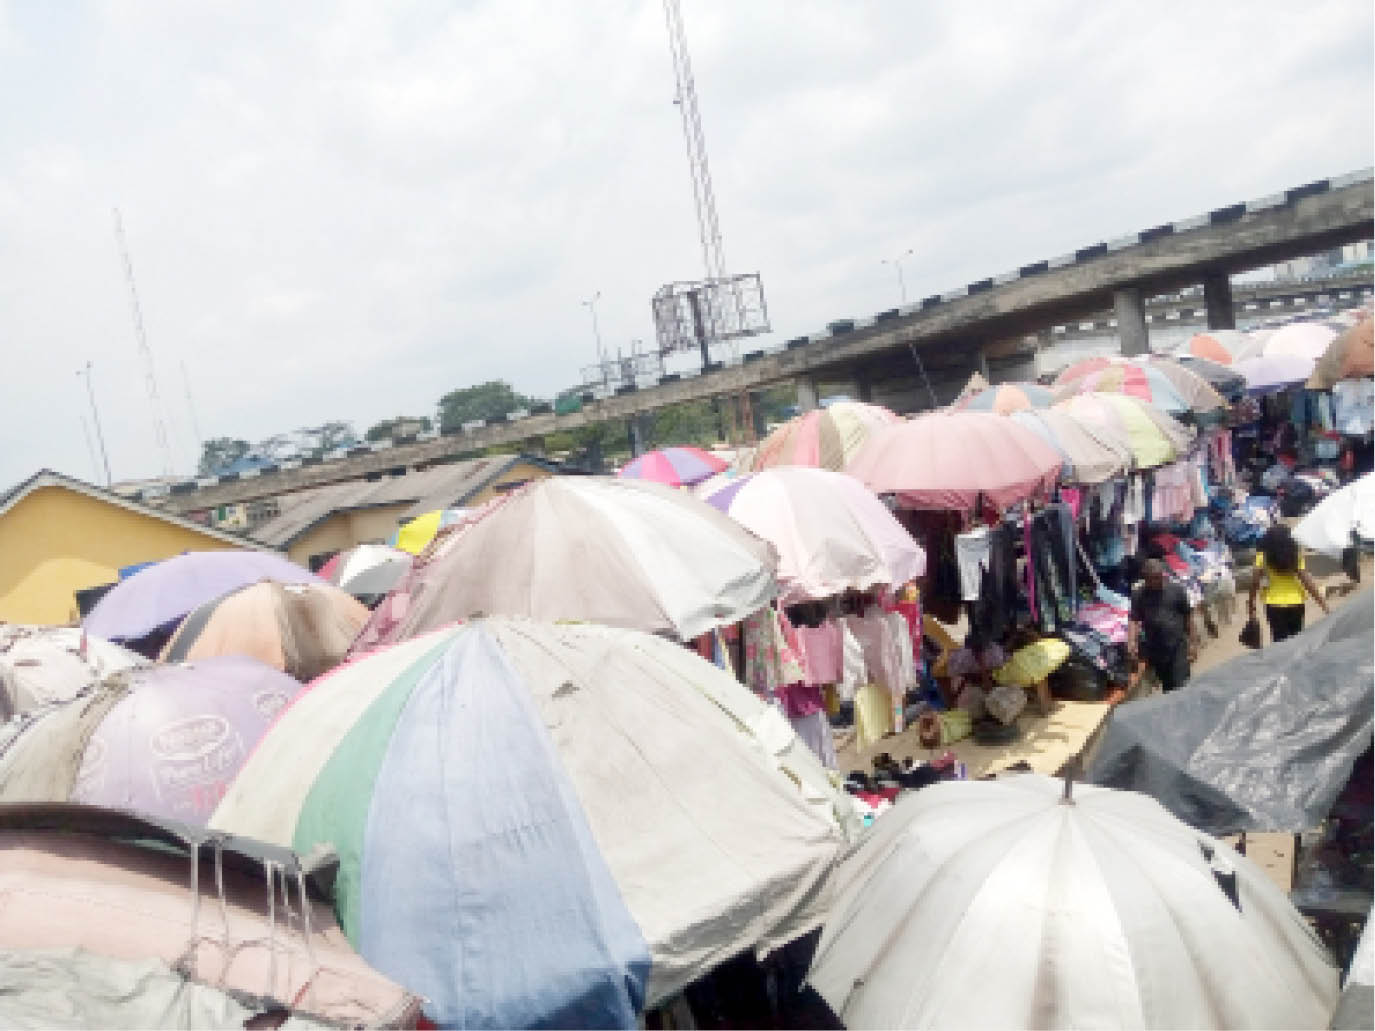 Another site with parasols used by traders at Port Harcourt